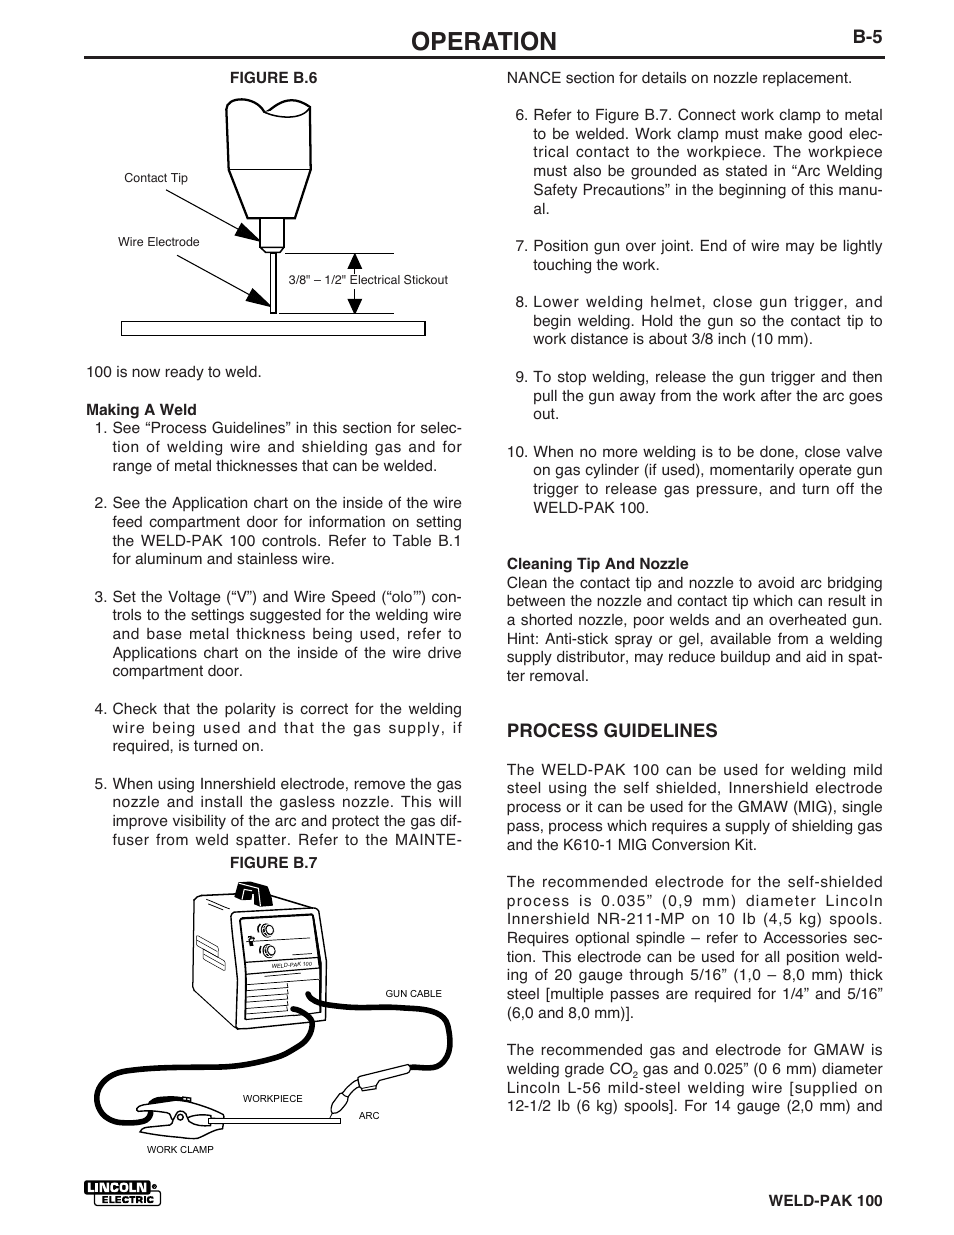 Operation, Process guidelines | Lincoln Electric WELD-PACK 100 ...